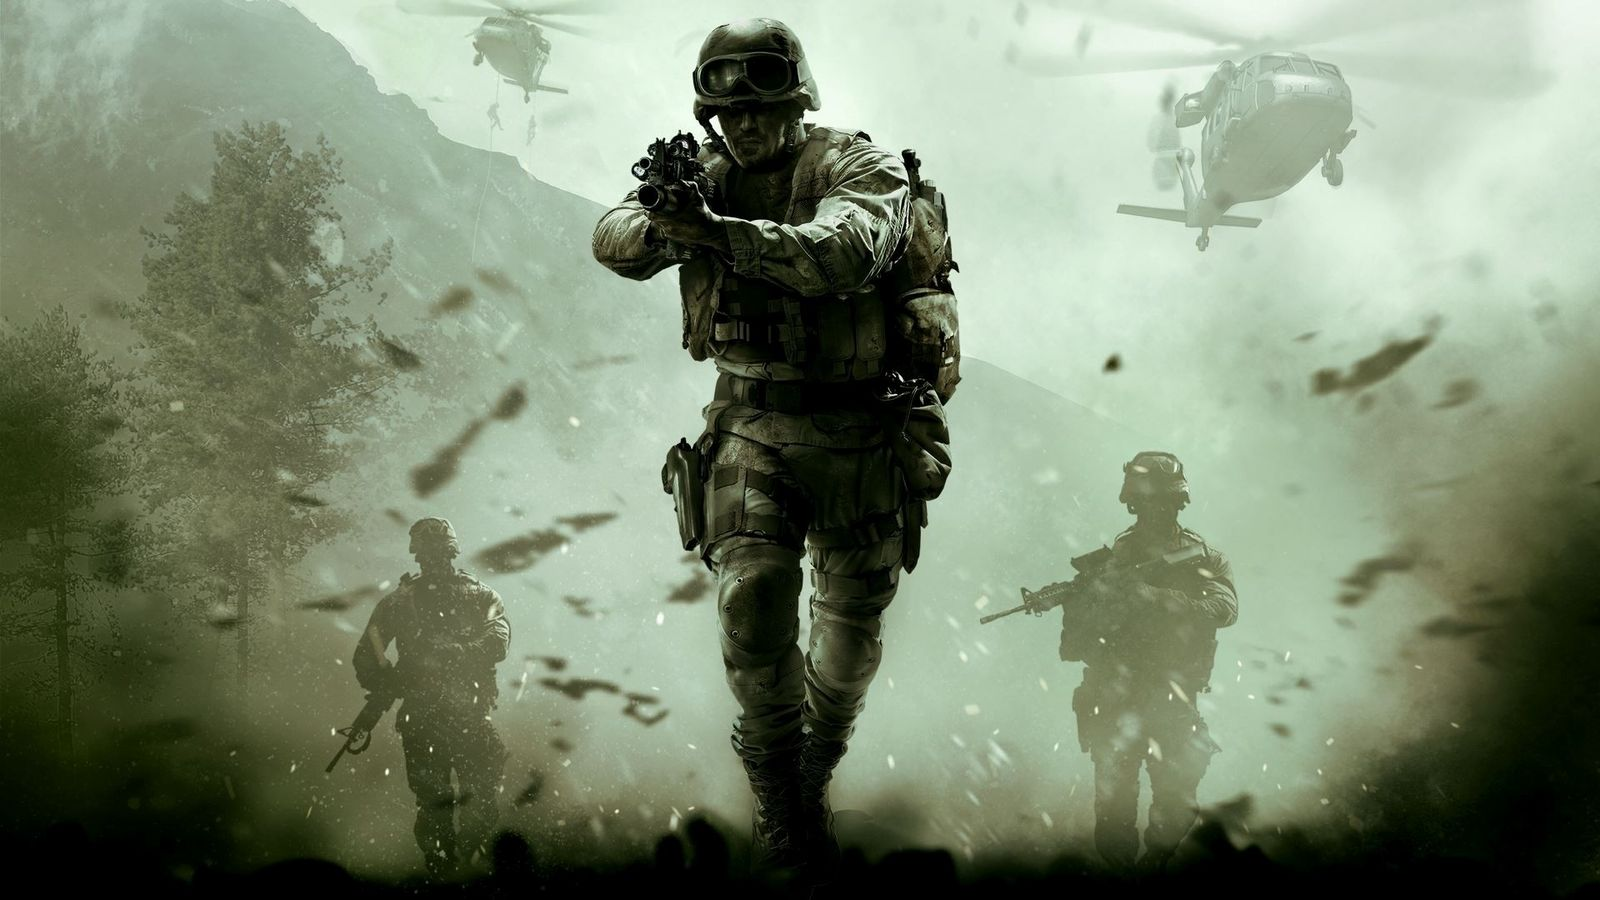 call of duty solder wallpaper